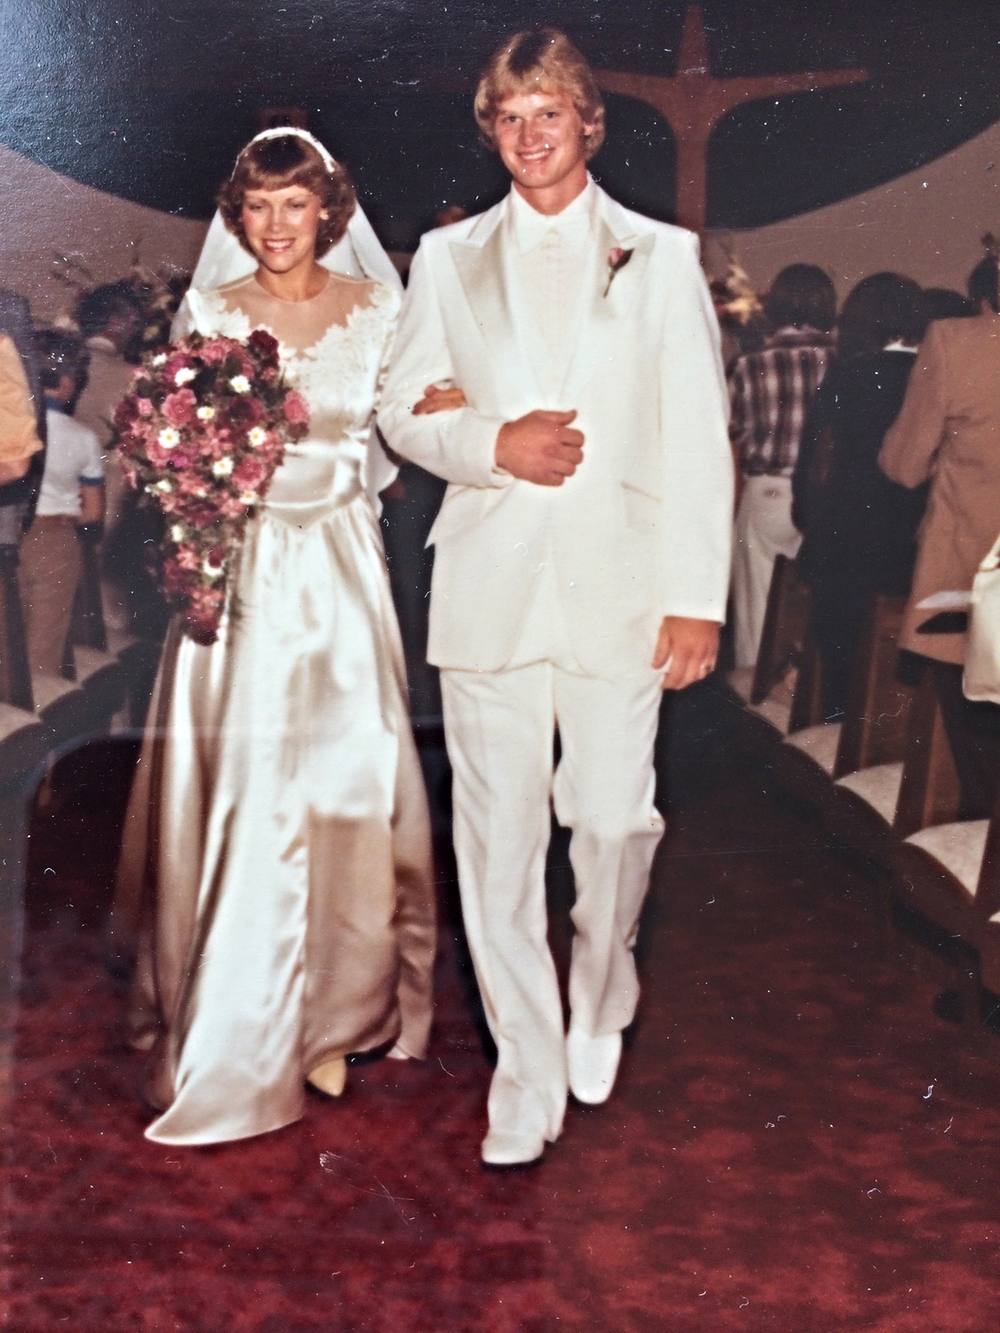 Love the 80's perm?!! The white tux?!!